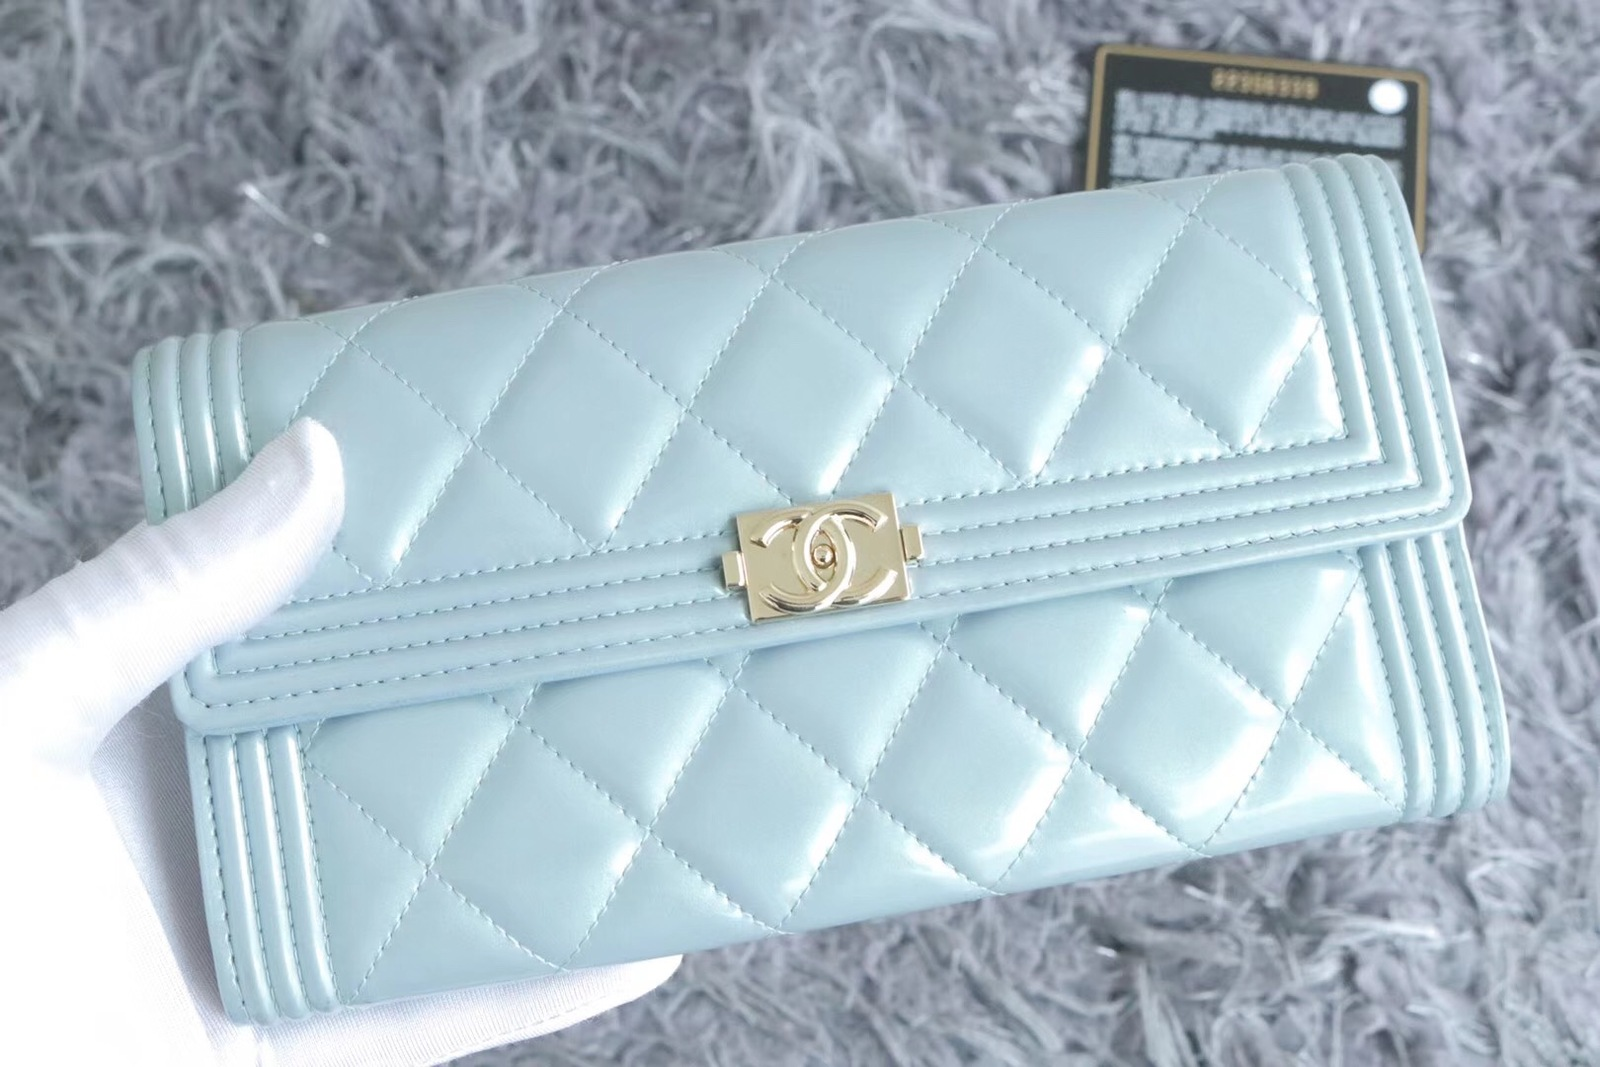 100% AUTH CHANEL PEARLESCENT BLUE QUILTED LEATHER BOY TRI-FOLD WALLET CLUTCH